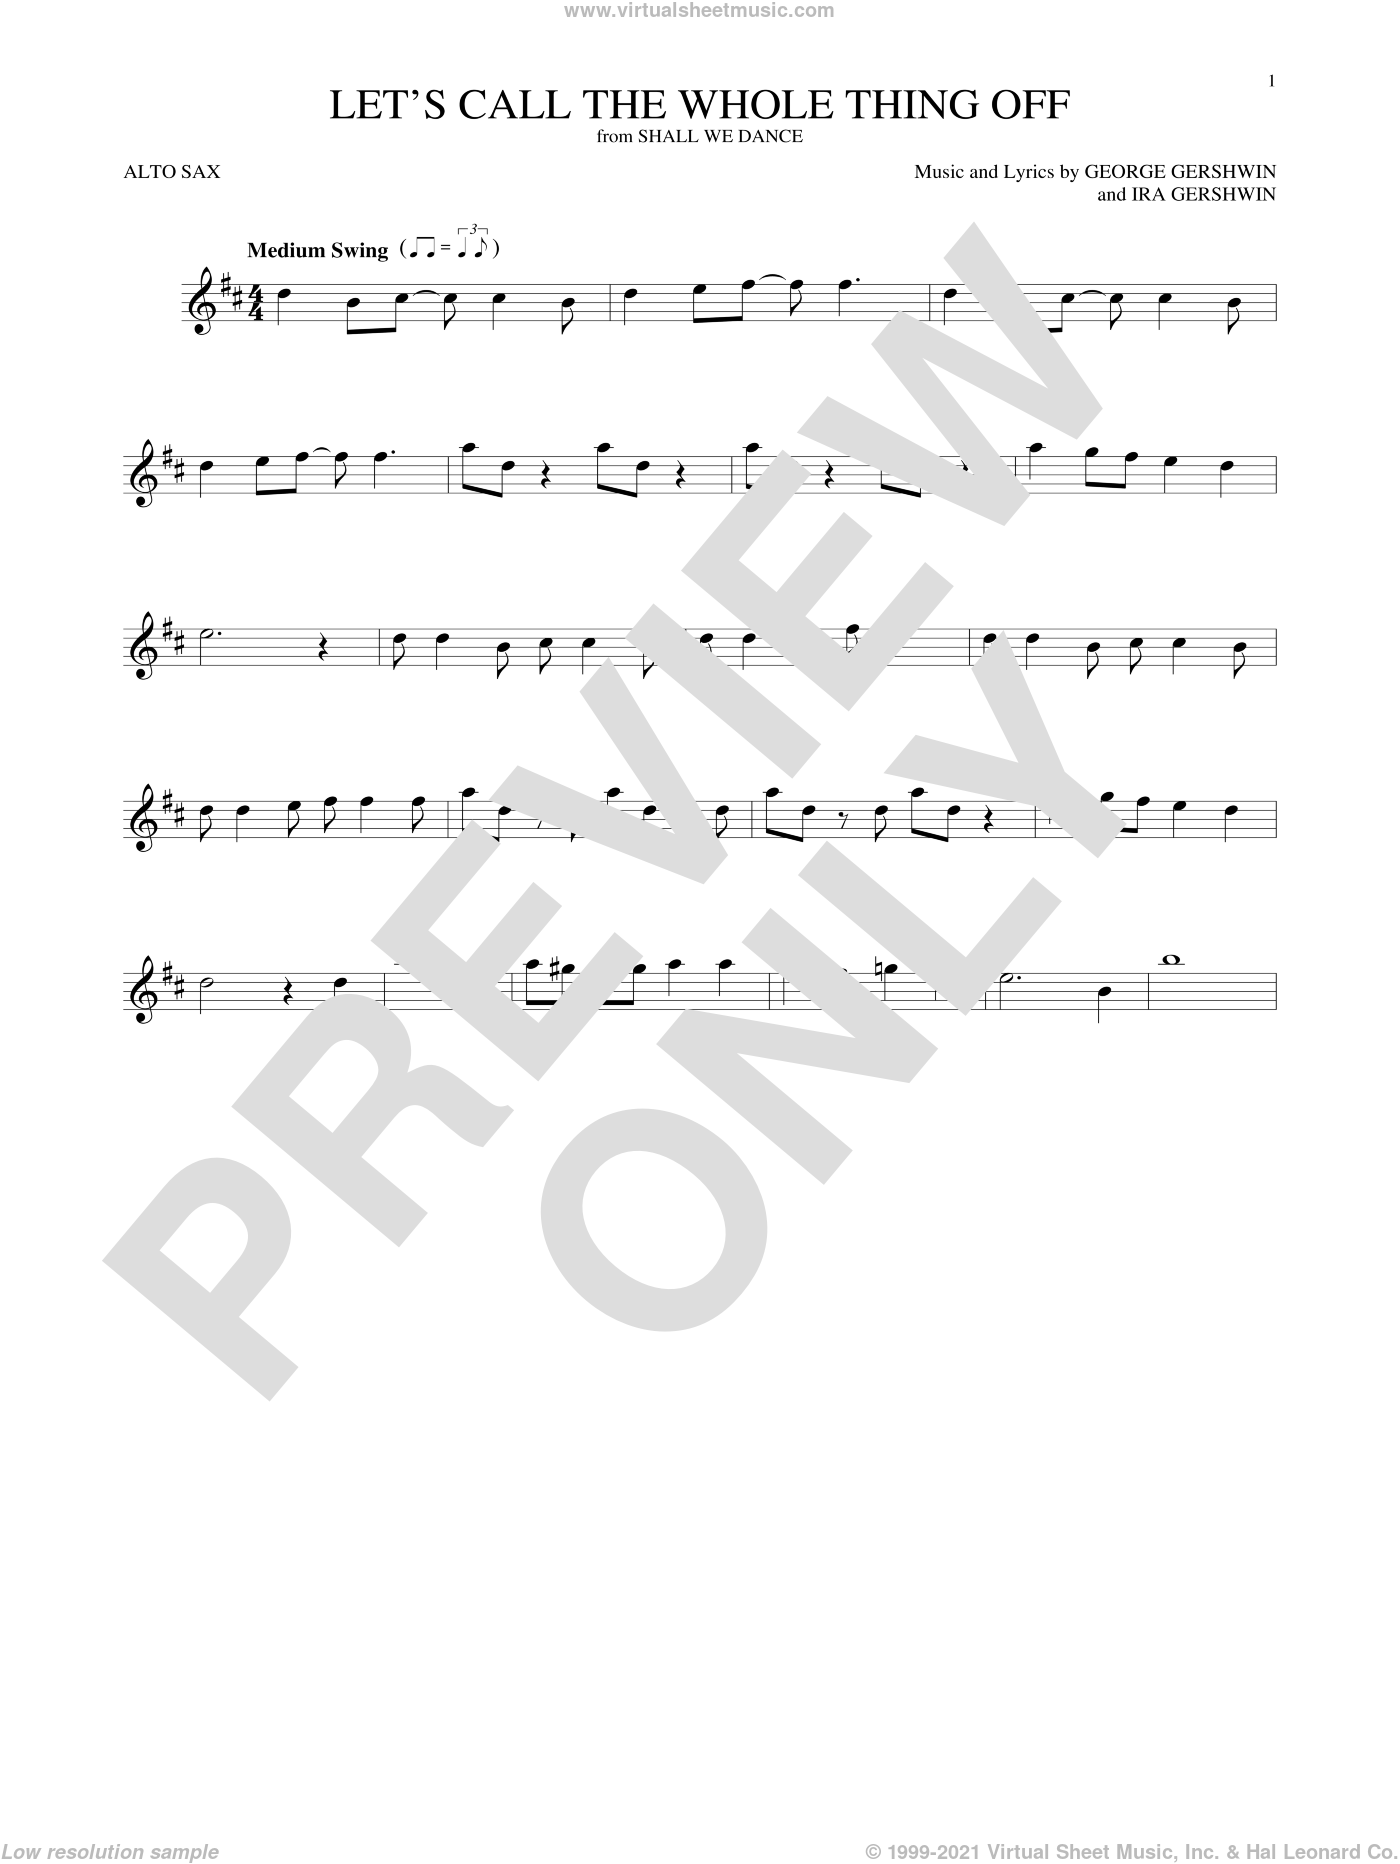 Let's Call The Whole Thing Off sheet music for alto saxophone solo by George Gershwin and Ira Gershwin, intermediate. Score Image Preview.